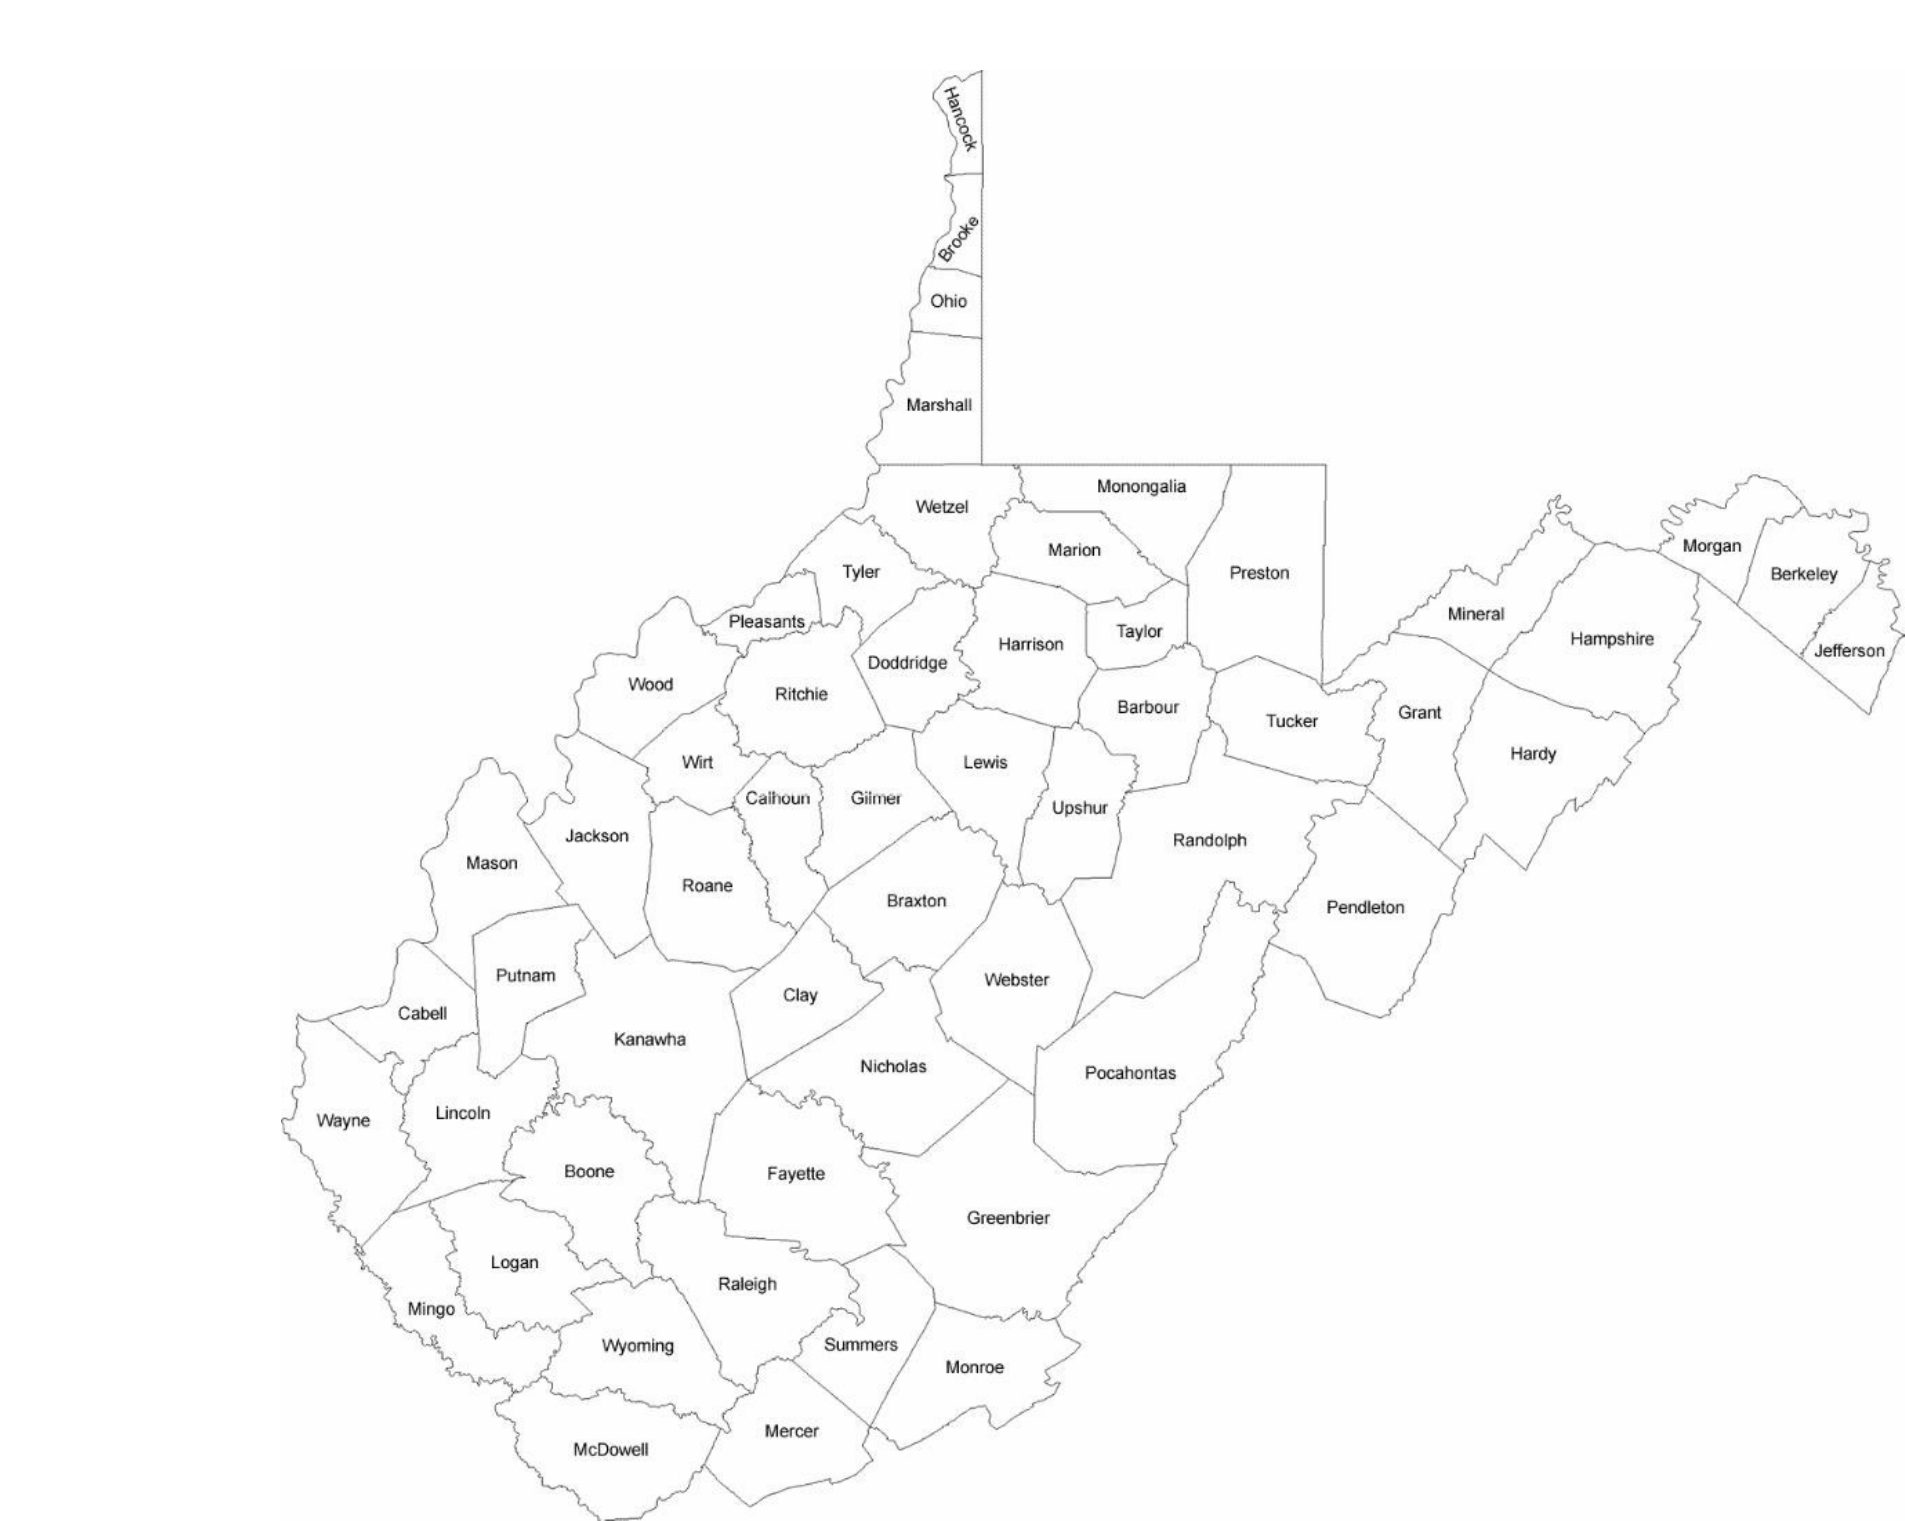 West Virginia County Map With County Names Free Download